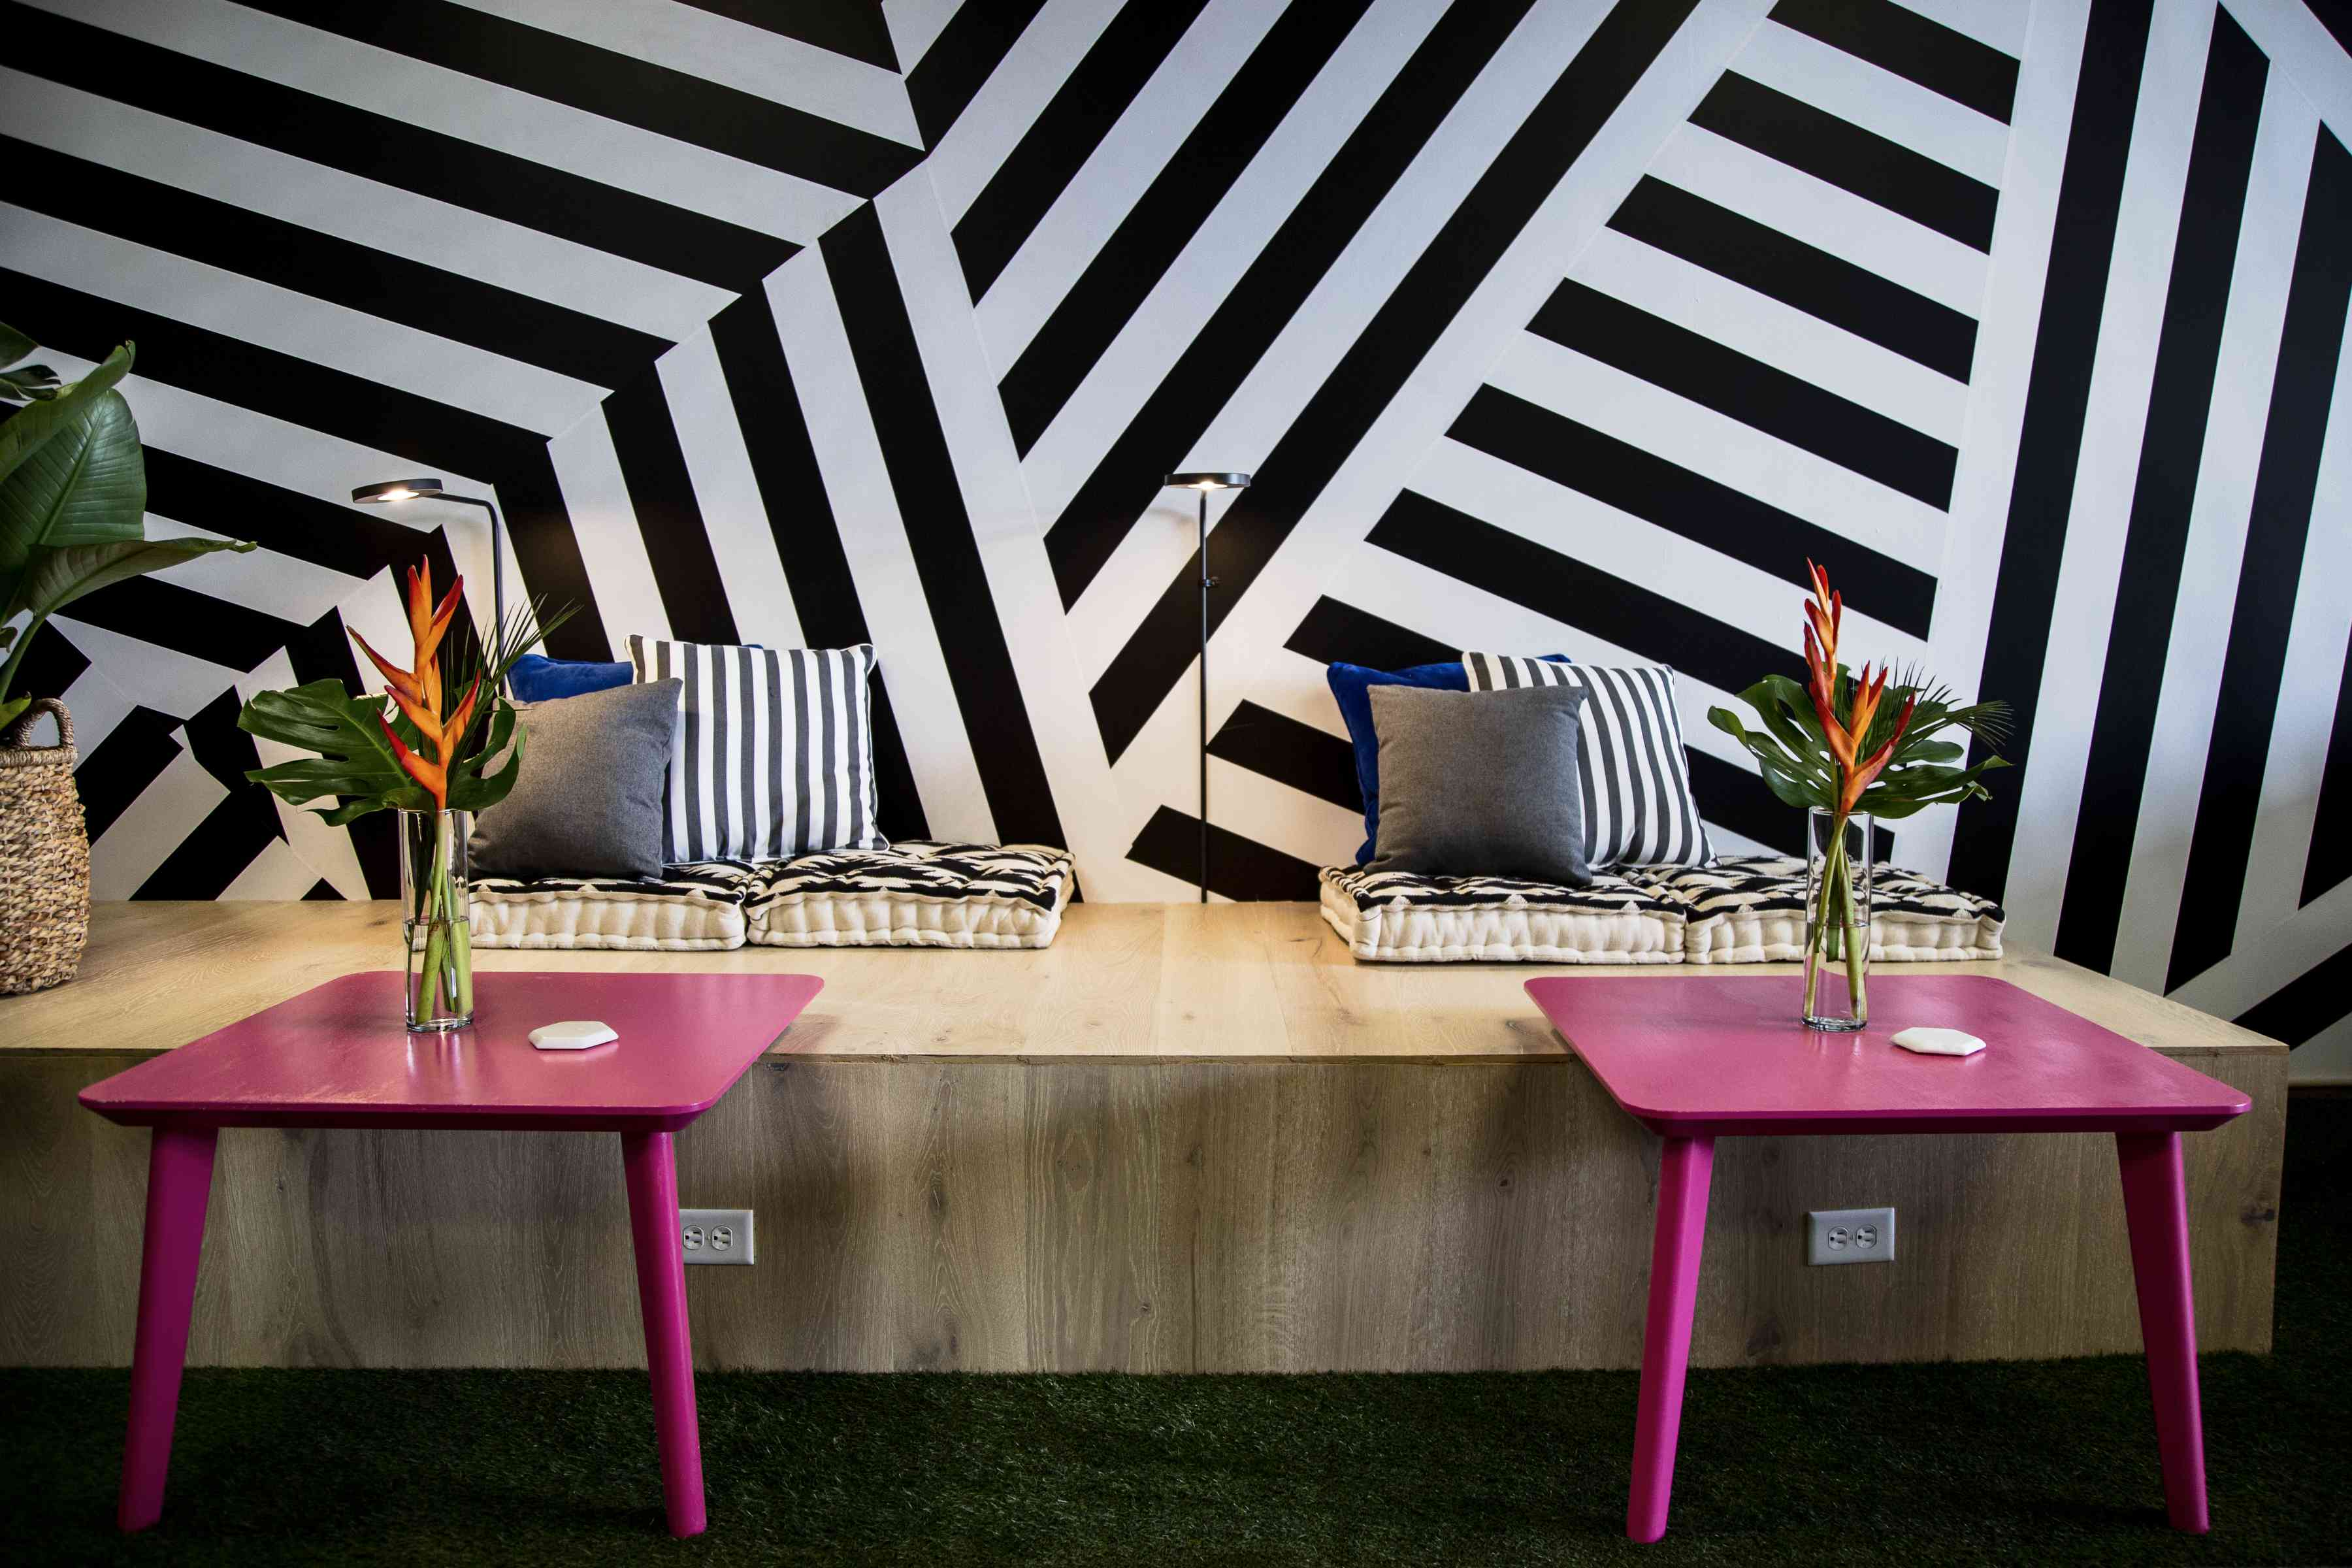 Office area with abstract black-and-white wall mural.